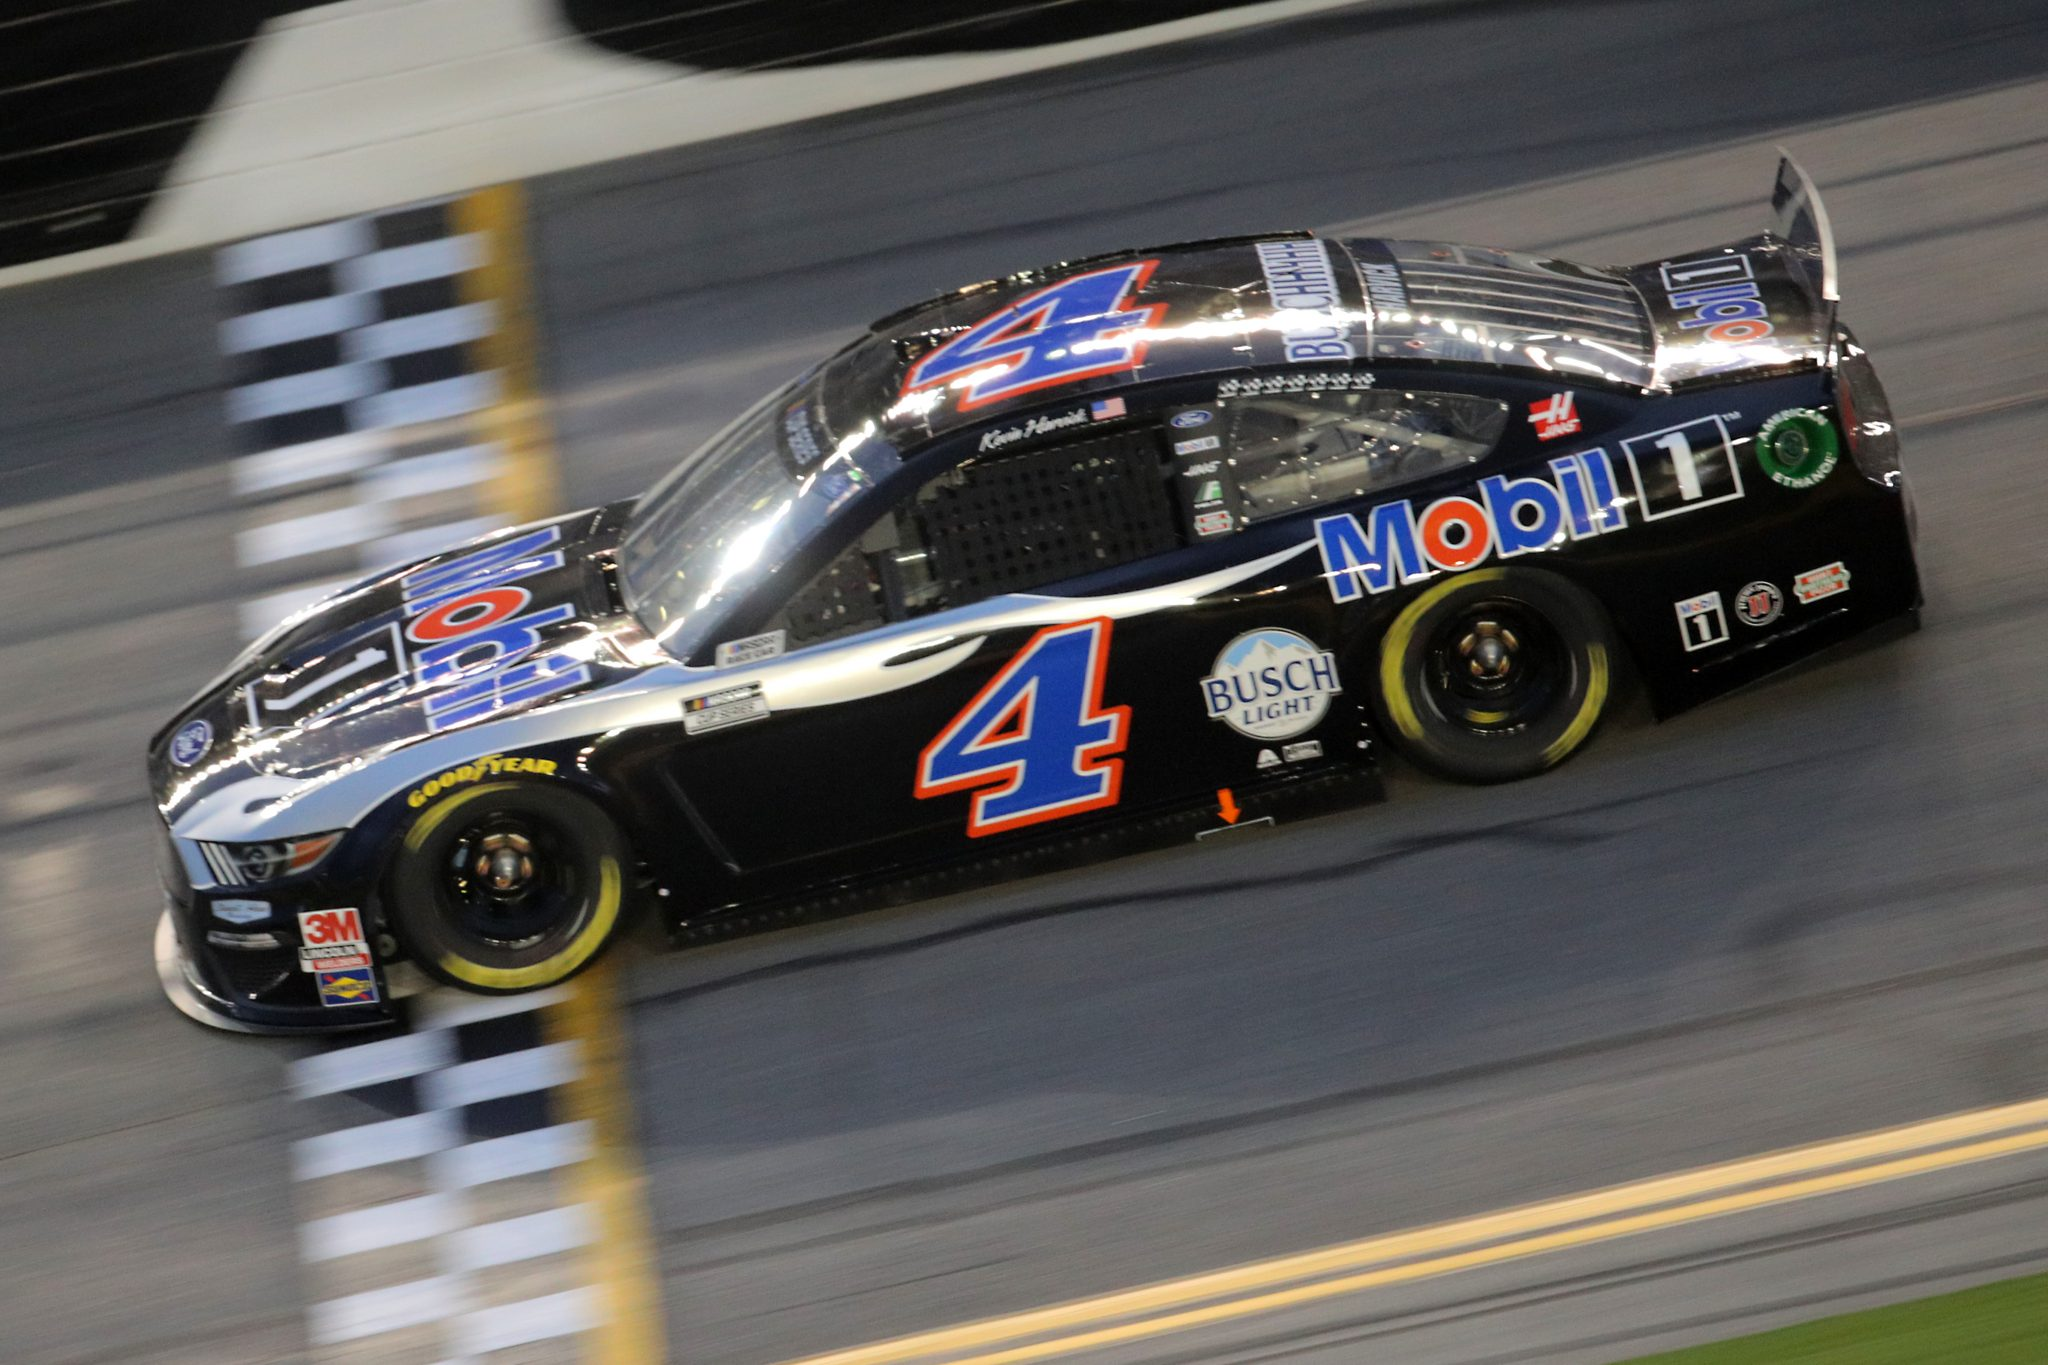 DAYTONA BEACH, FLORIDA - AUGUST 29: Kevin Harvick, driver of the #4 Mobil 1 Ford, drives during the NASCAR Cup Series Coke Zero Sugar 400 at Daytona International Speedway on August 29, 2020 in Daytona Beach, Florida. (Photo by Chris Graythen/Getty Images) | Getty Images